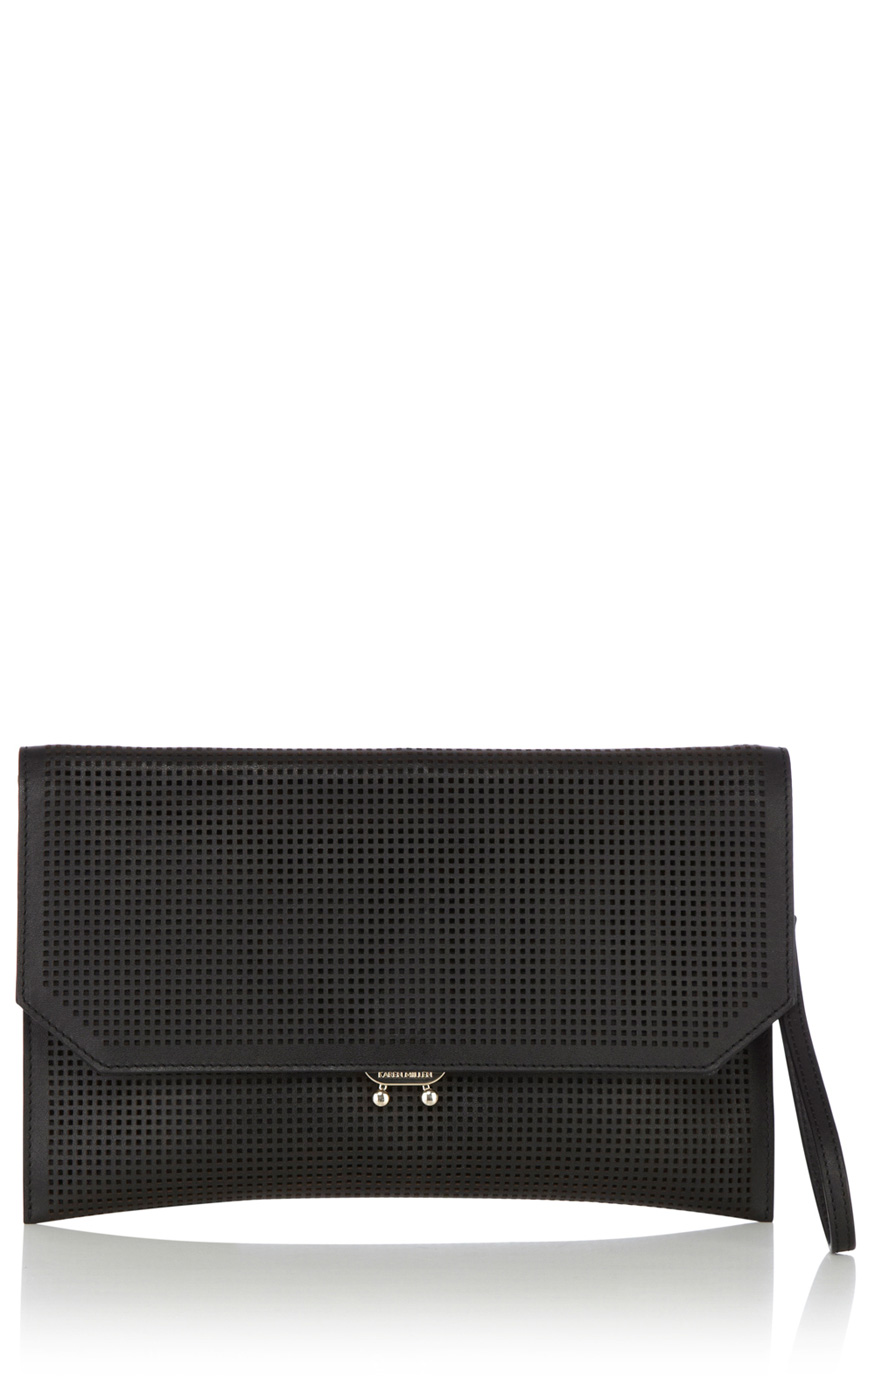 Perforated clutch | Luxury Women's sportsluxe | Karen Millen